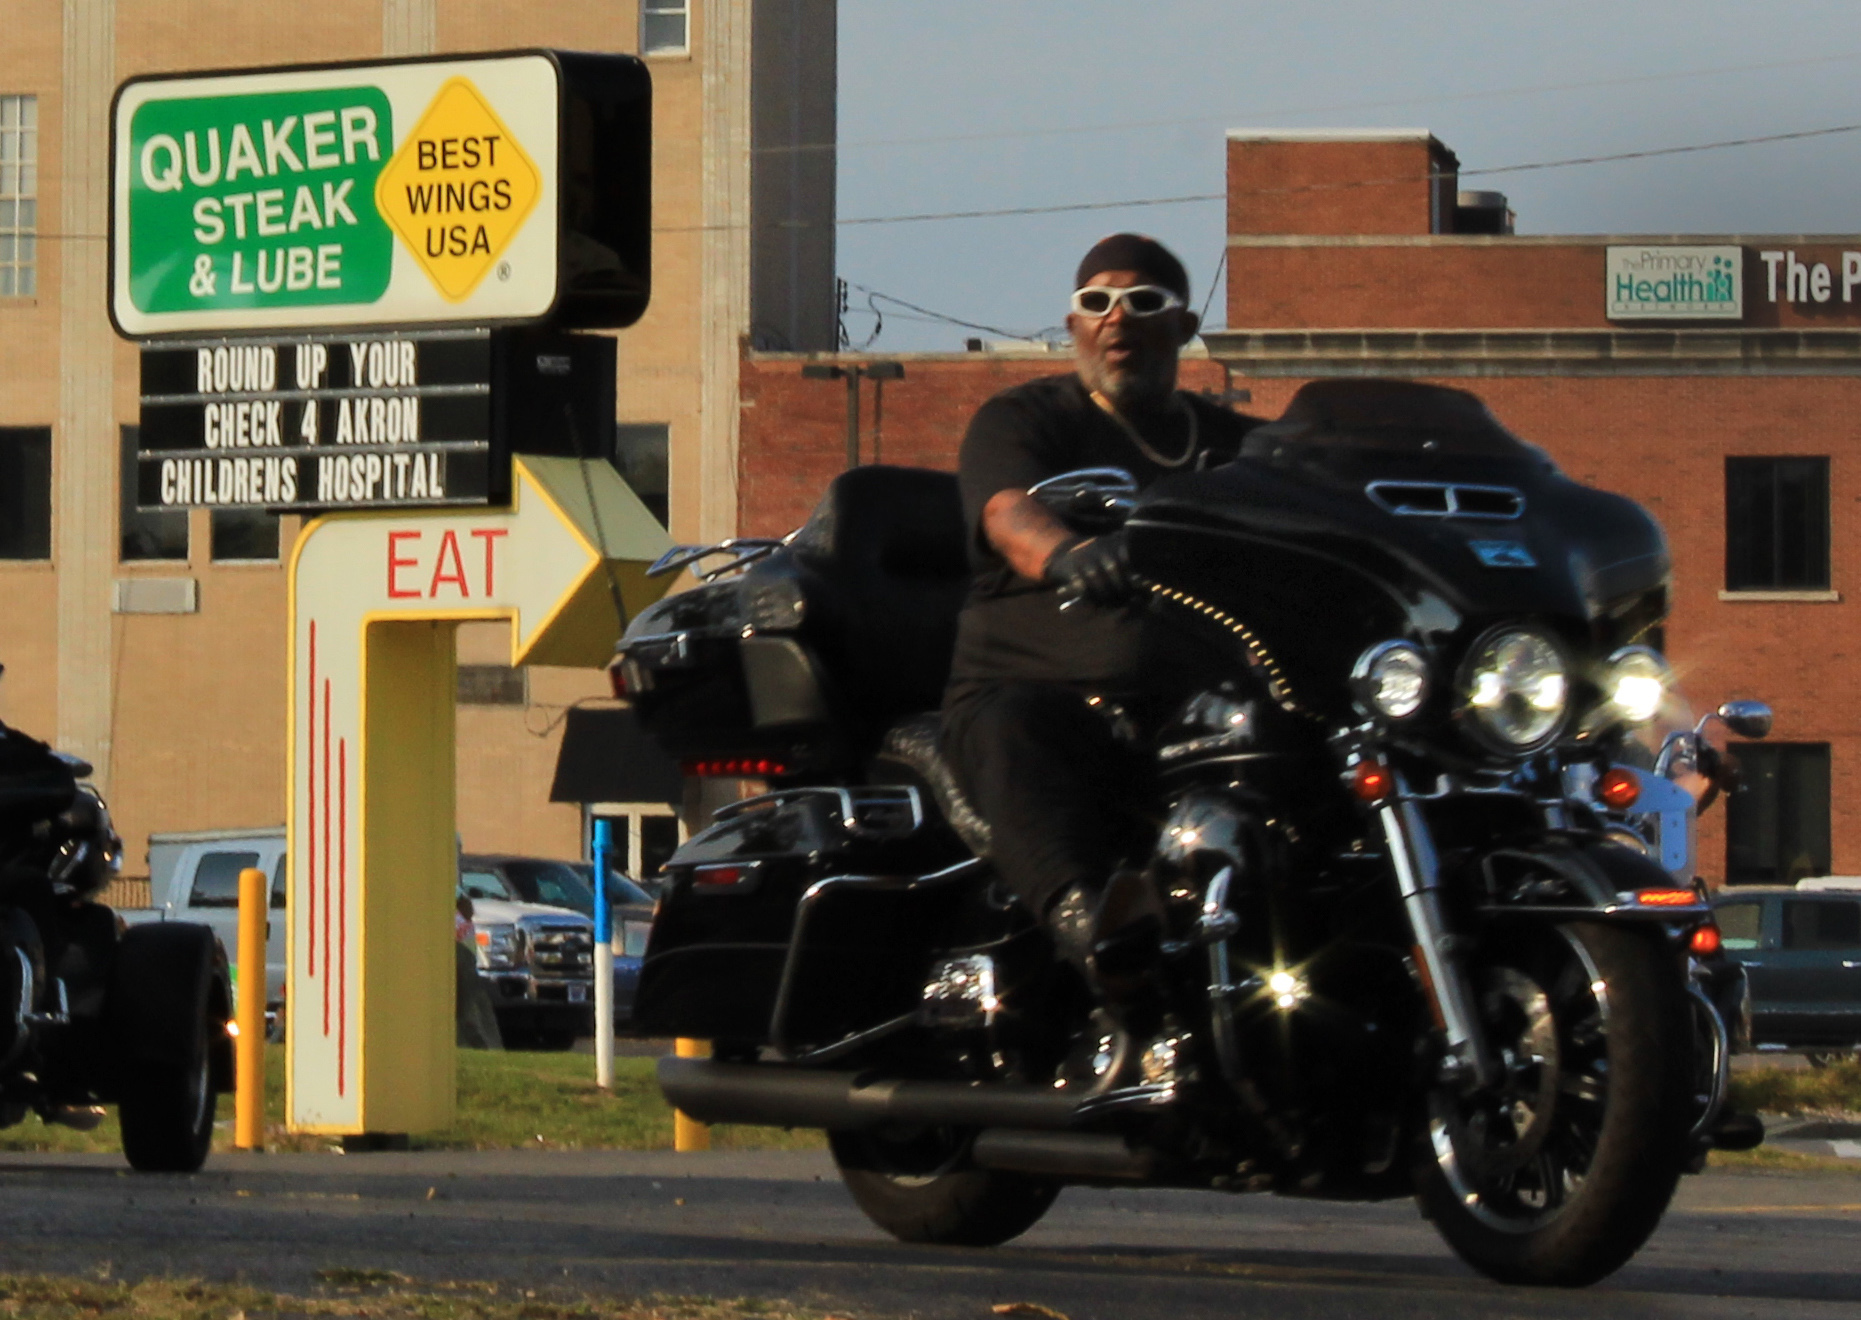 A cyclist motors past Quaker Steak and Lube in Sharon. This motor-themed restaurant is the original Quaker Steak and Lube. It was opened in 1974, and is still known for its wings and Bike Night. The restaurant anchors one end of the three block section of the Shenango River that hosts the Waterfire festivities. Photo by Teagan Staudenmeier